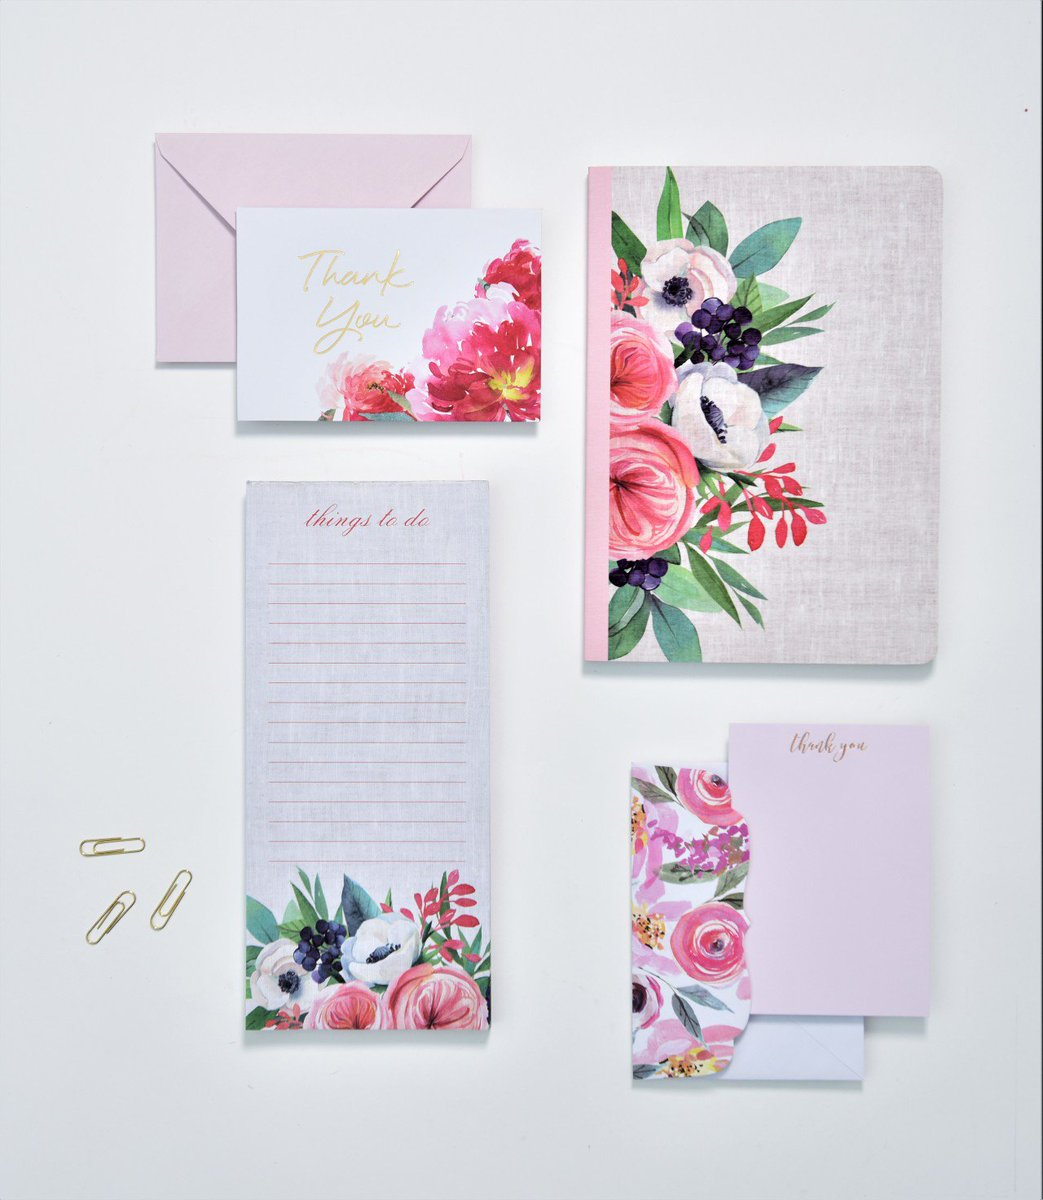 All things floral...jot down notes, create a to-do list and send out a personal note to say thank you. #floraleverything customnotebooks #bulletjournaling #notebooks #journal #writeitdown #school #work #becreative #gartnerstudios #planning #thankyoucards #snailmail #listpads